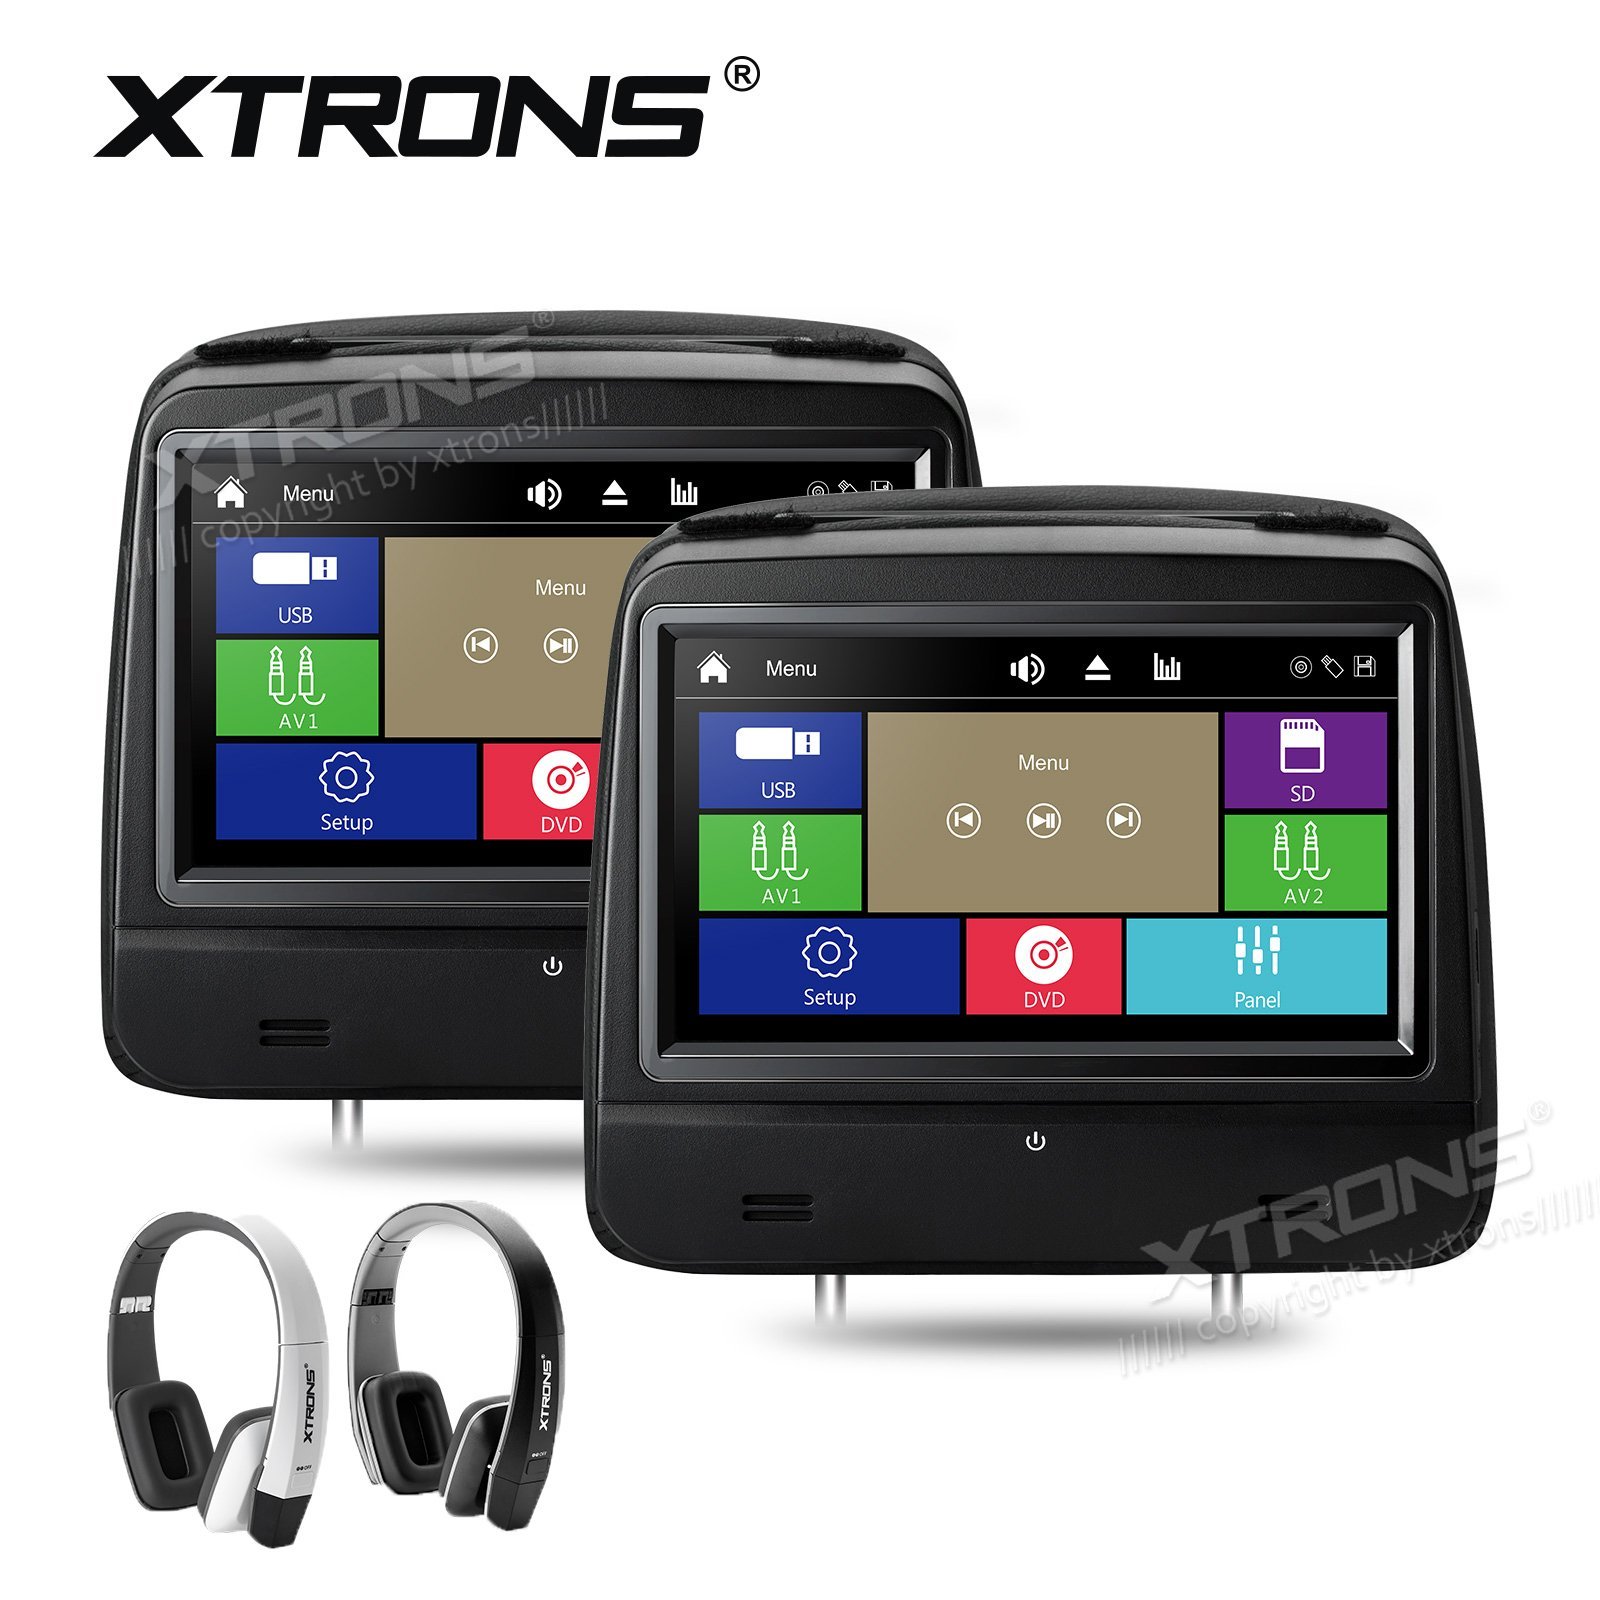 XTRONS 2 x 8 Inch Pair HD Digital Capacitive Touch Screen Leather Cover Car Headrest DVD Player 1080P Video New Version IR Headphones(Black&White)